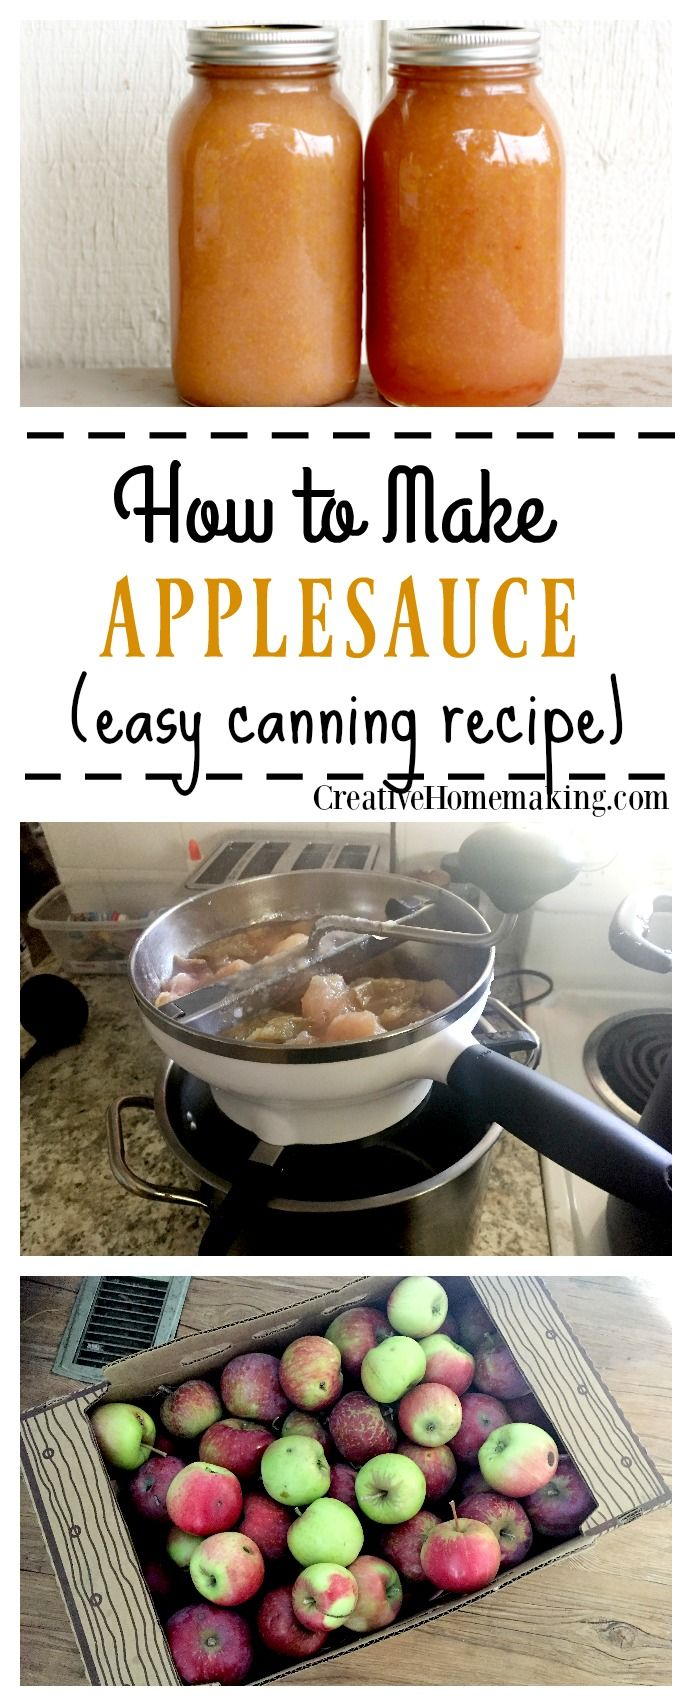 How to make and can homemade applesauce from apples picked straight from the tree.